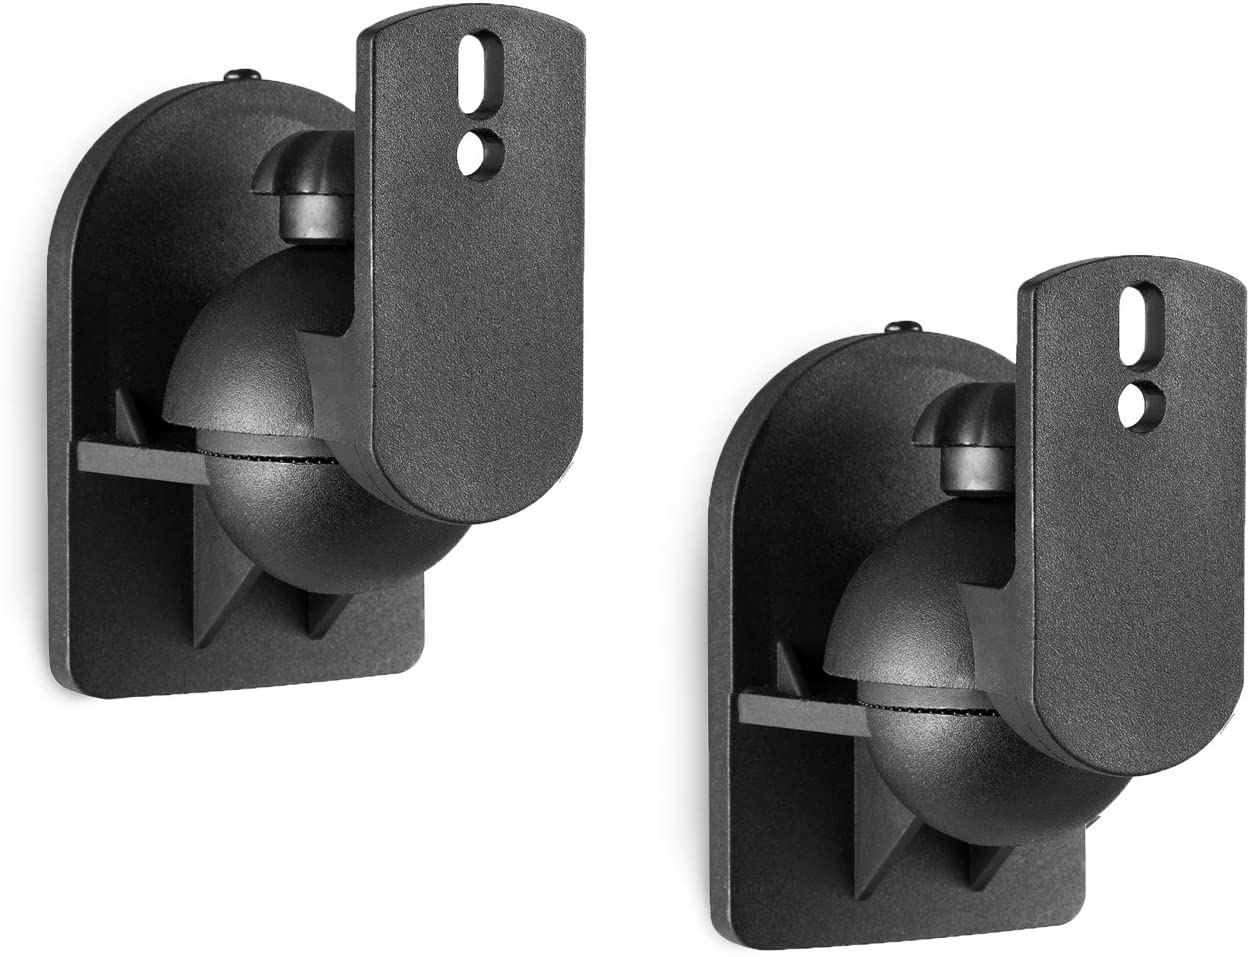 WALI Dual Speaker Wall Mount Brackets Multiple Adjustments for Bookshelf